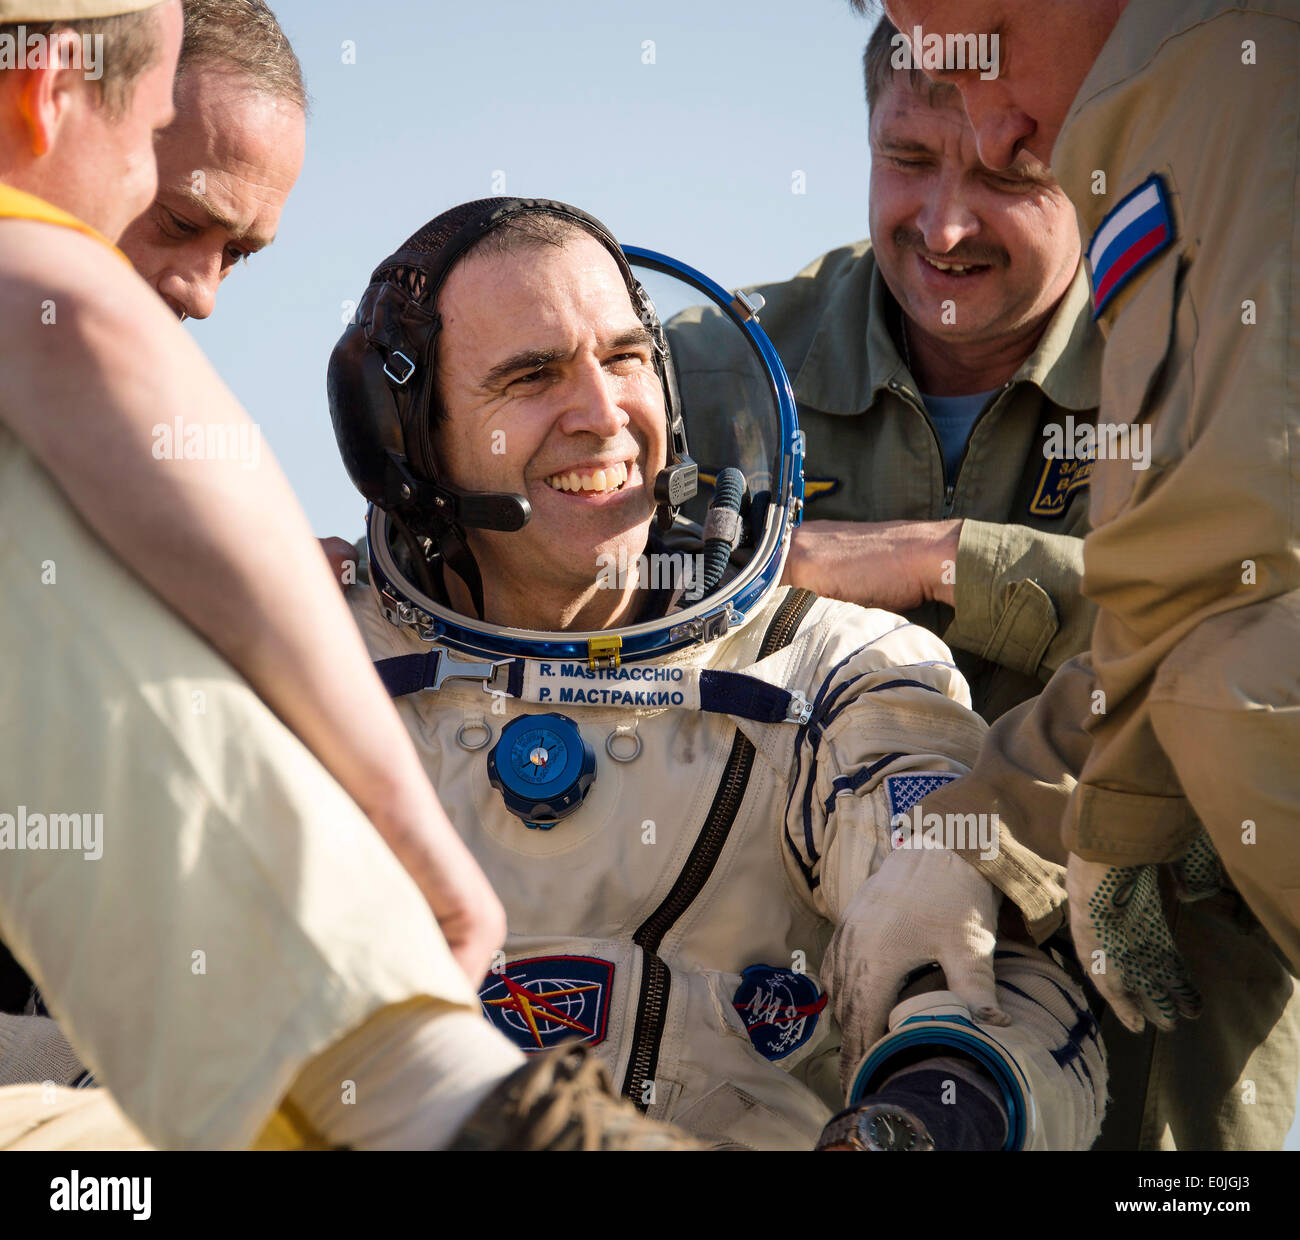 ISS Expedition 39 Flight Engineer Rick Mastracchio of NASA is helped out of the capsule just minutes after landing with fellow expedition crew members in the Soyuz TMA-11M spacecraft May 14, 2014 near the town of Zhezkazgan, Kazakhstan. Wakata, Tyurin and Mastracchio returned to Earth after more than six months onboard the International Space Station where they served as members of the Expedition 38 and 39 crews. - Stock Image